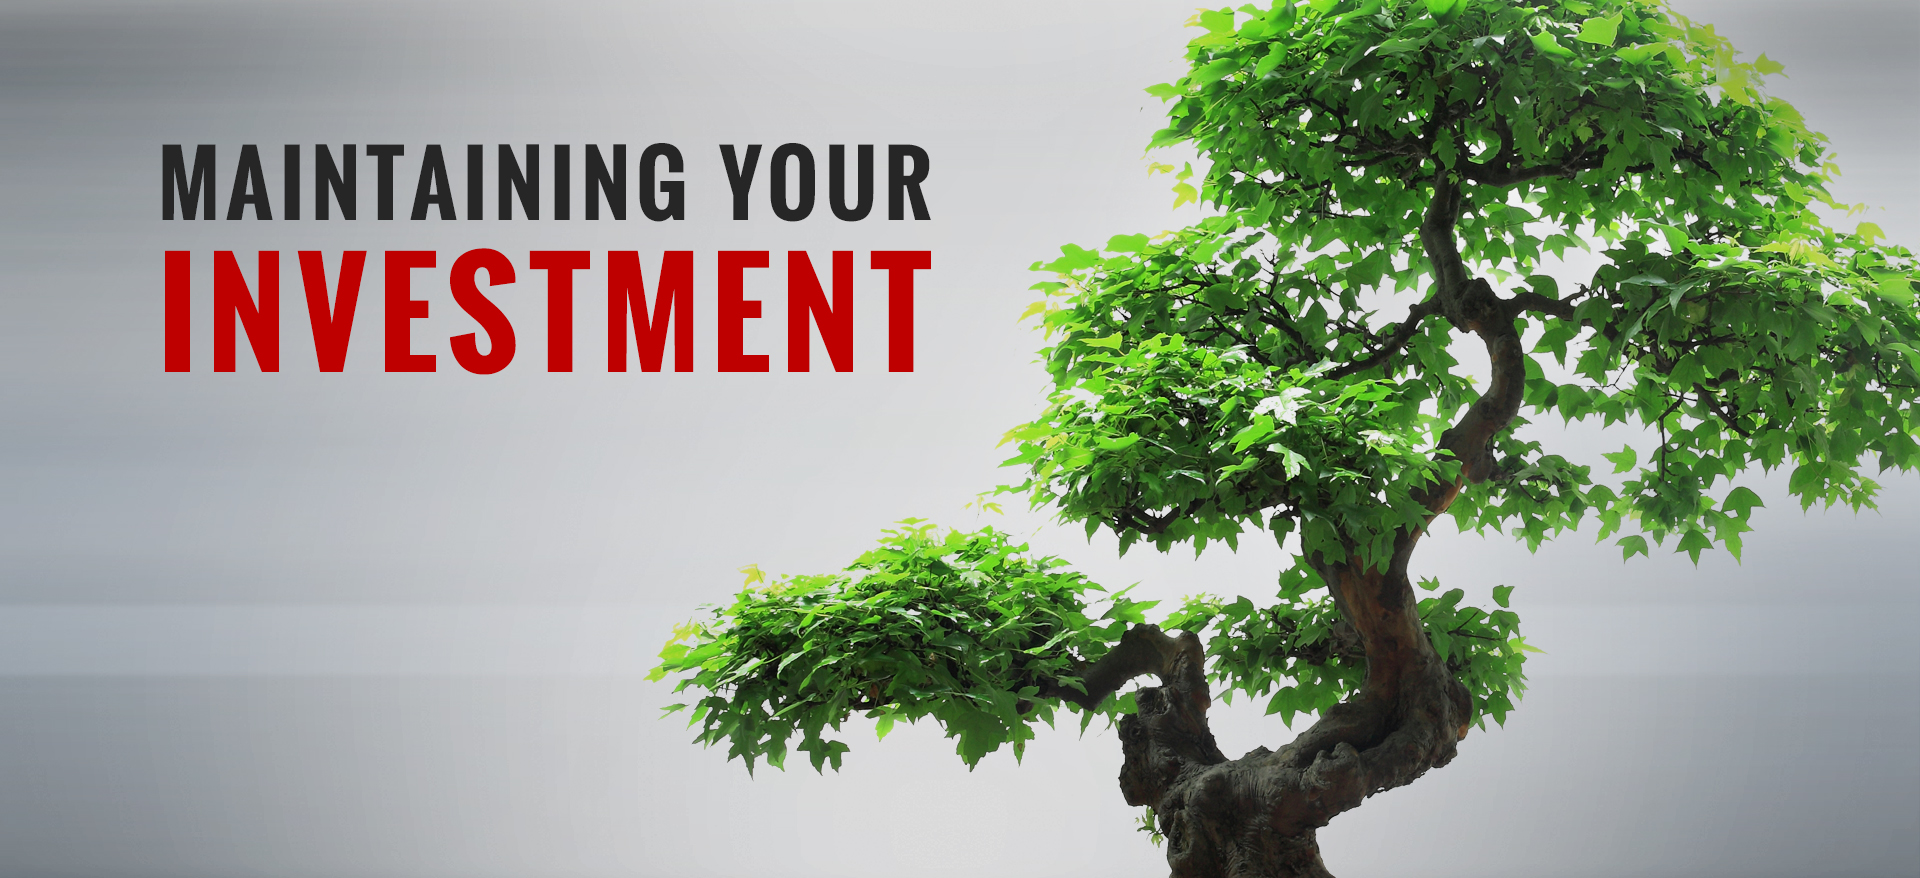 Maintaining your investment.